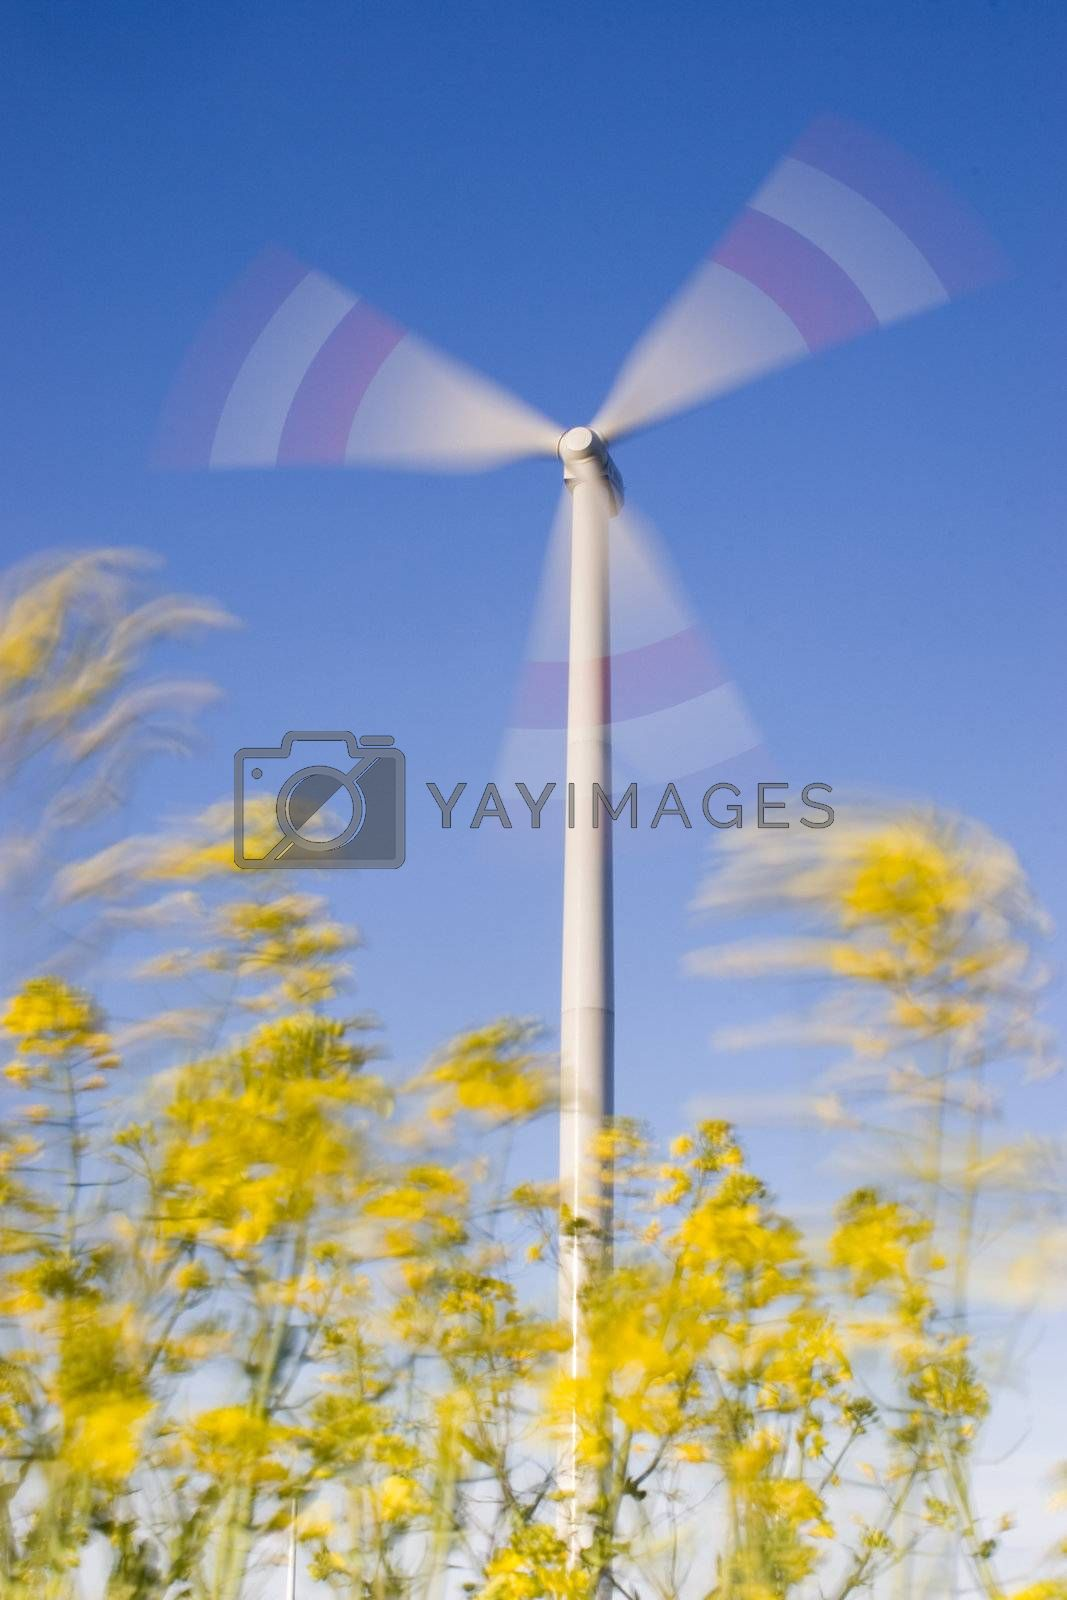 Rotating wind-turbine and motion blurred yellow flowers in the foreground